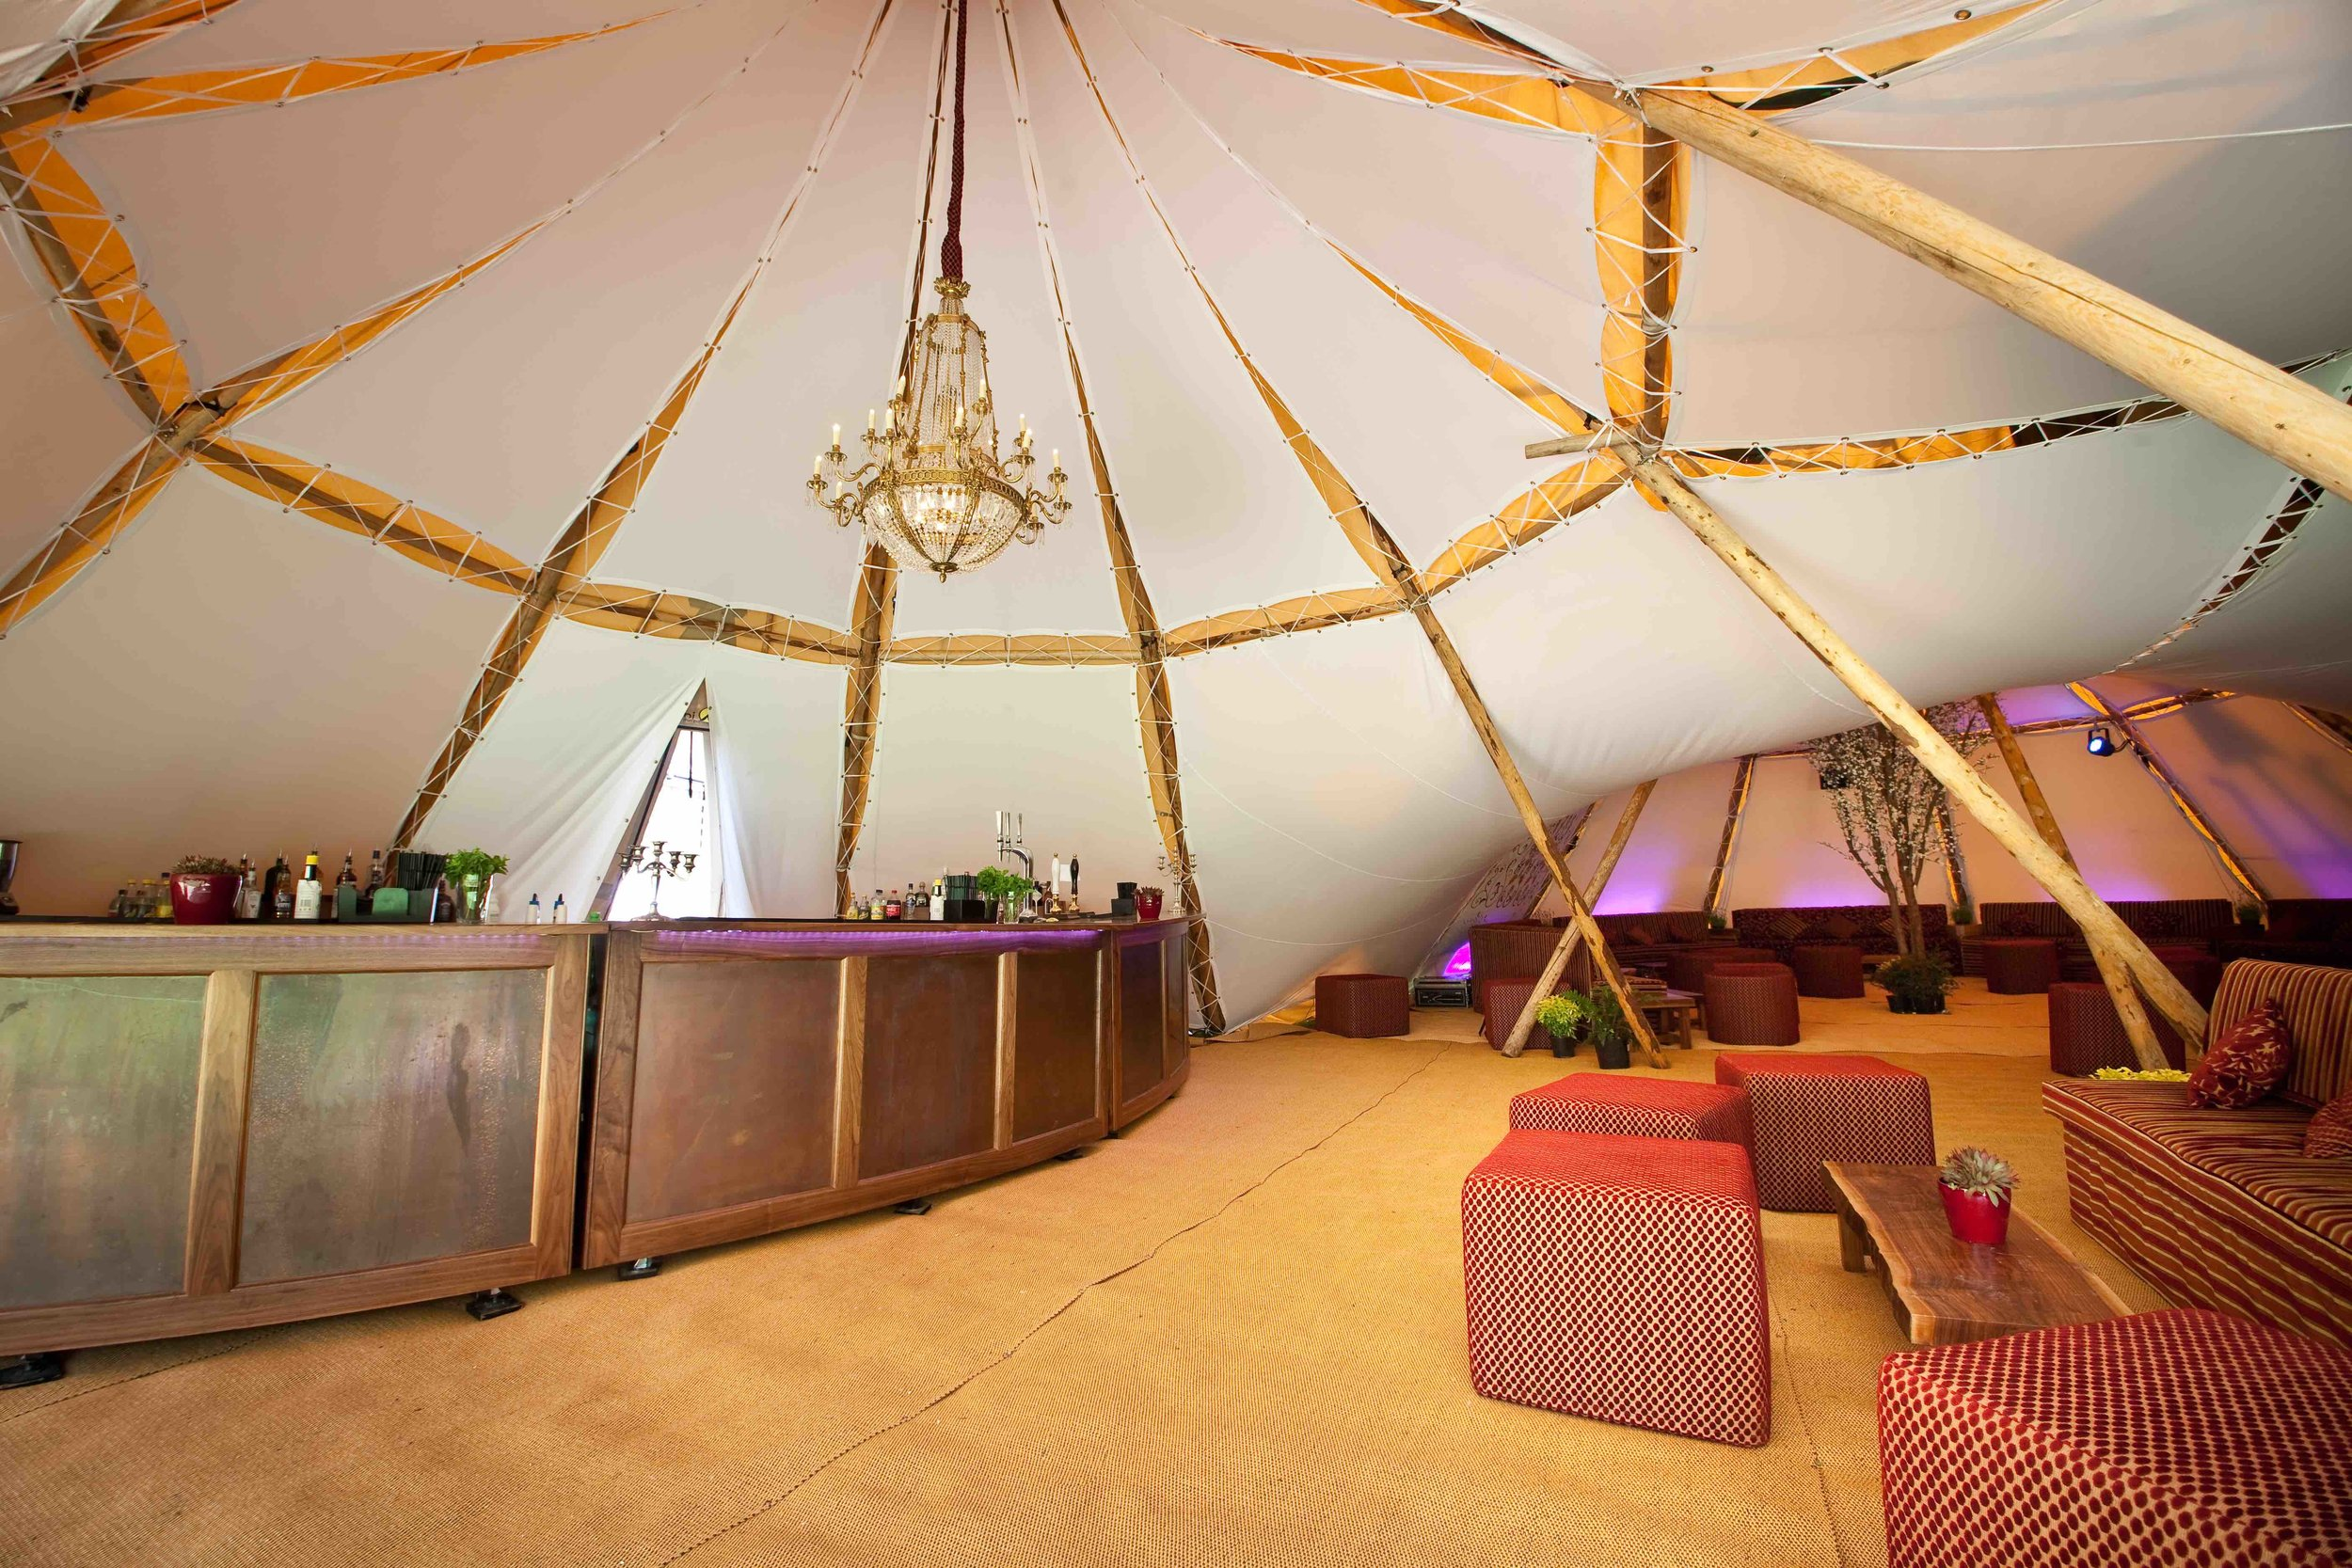 Our wooden bars can be hired alongside our beautiful tipis for your UK event, whether it's a wedding, party, corporate event or festival. Our decor and interiors include solid wooden furniture, beautiful tent linings, chandeliers and lighting.